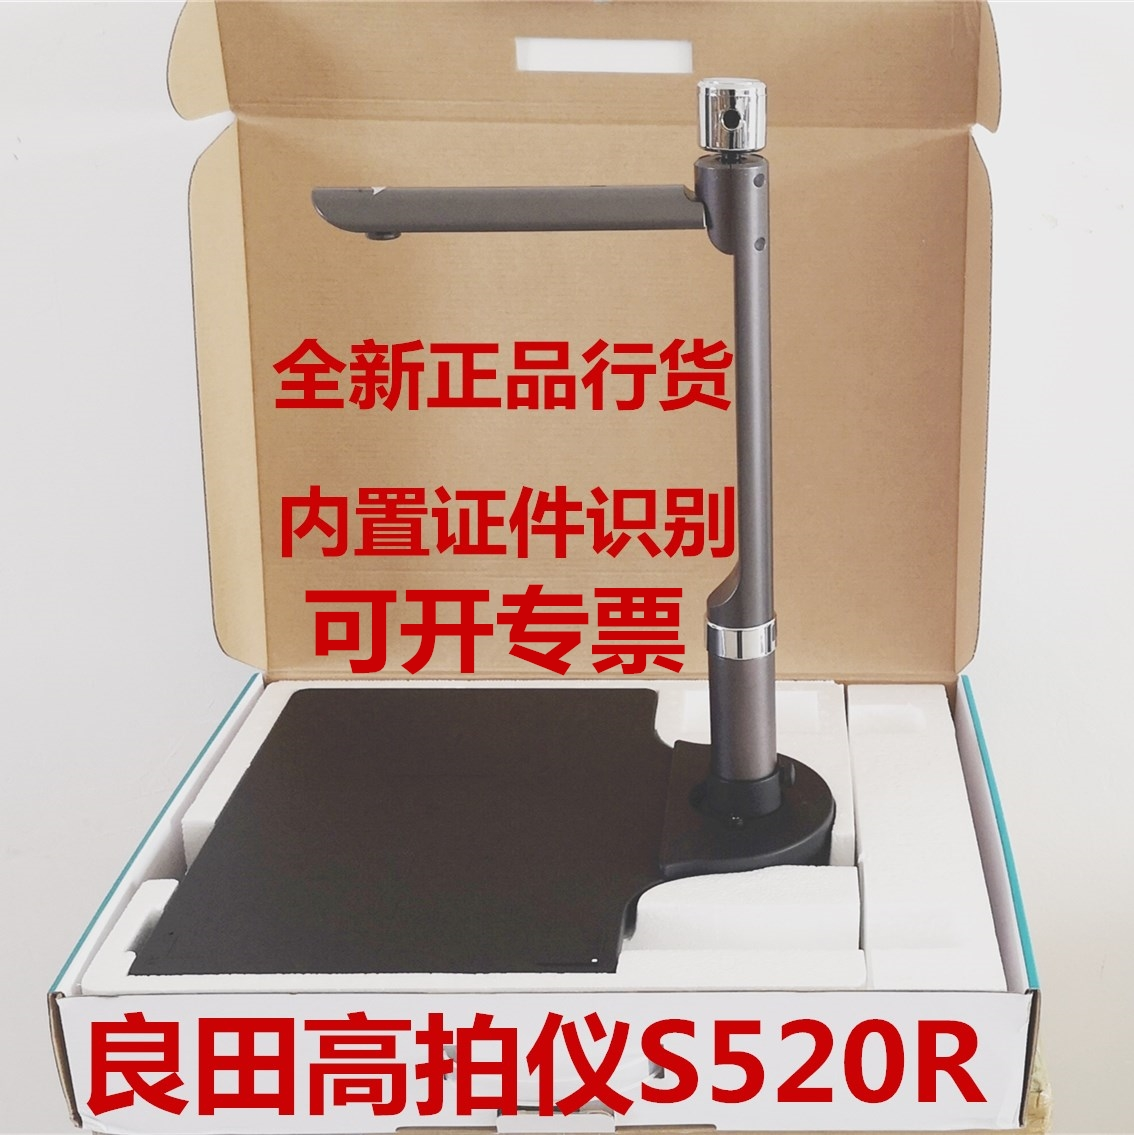 Liangtian high camera s520r dual camera s620a3r ID recognition s620a3dr office scanning kx550r